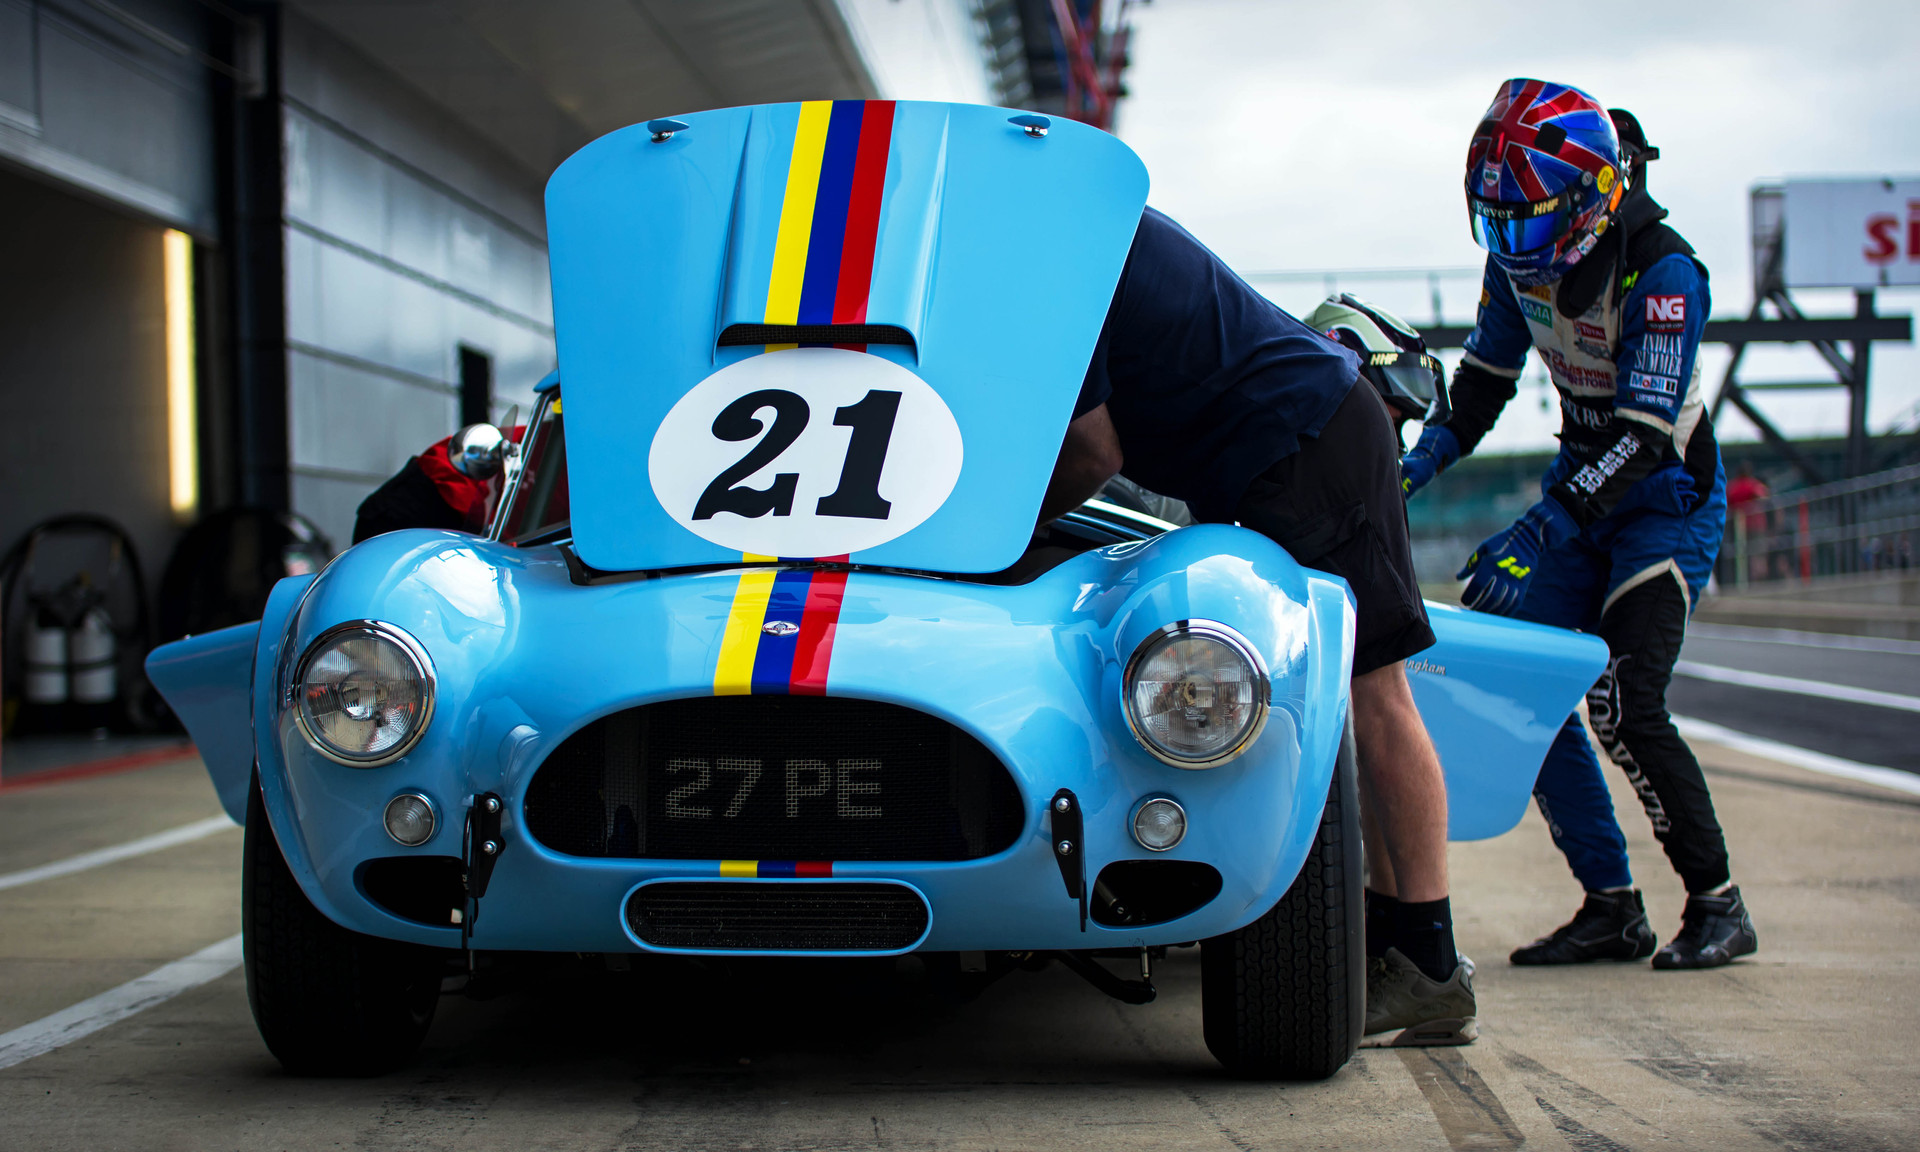 James Cottingham's 1964 AC Cobra